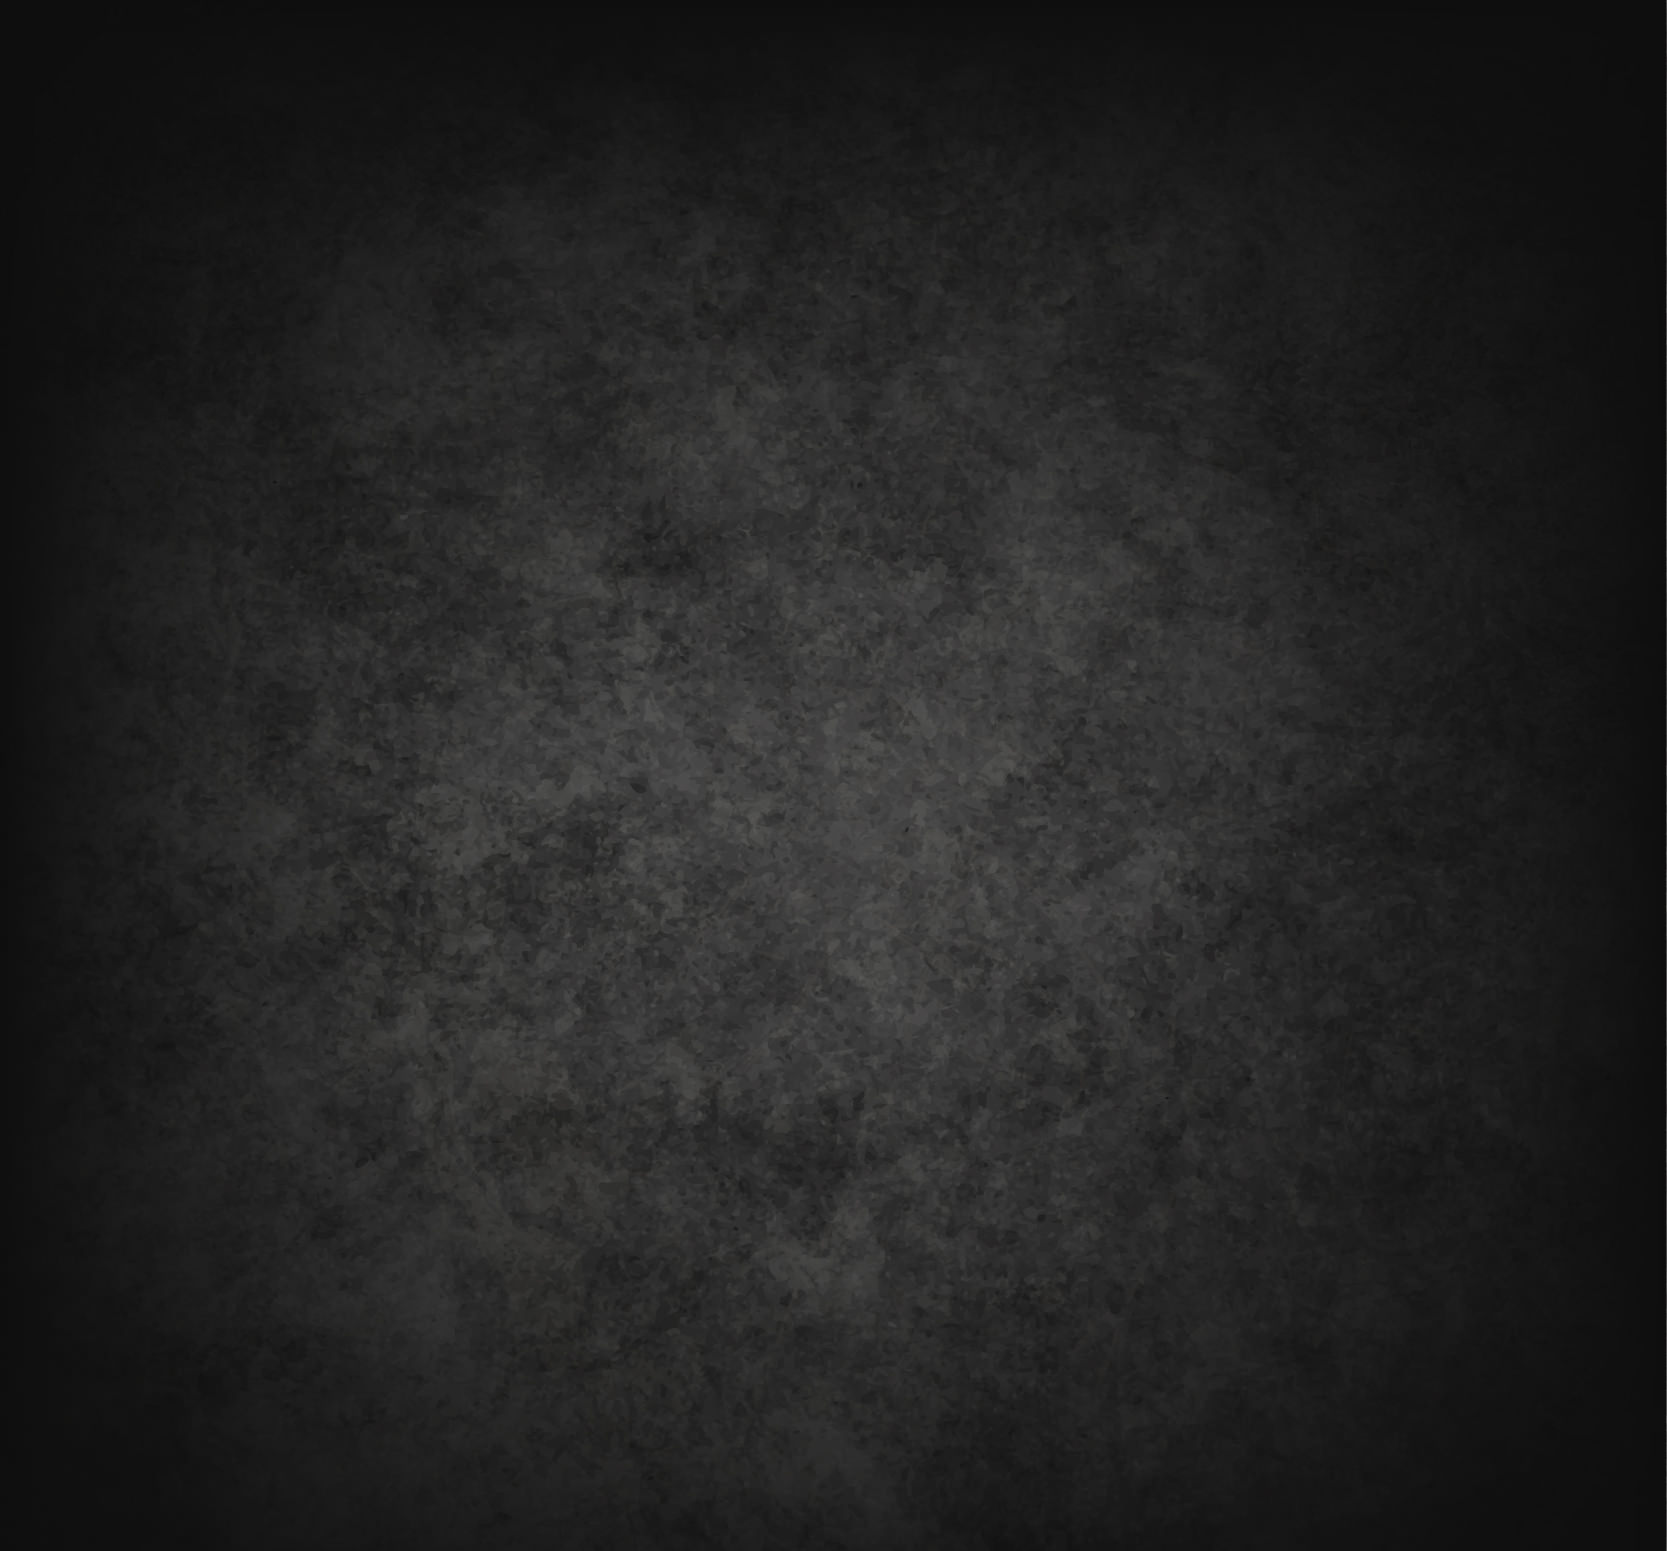 black white grunge background - photo #2